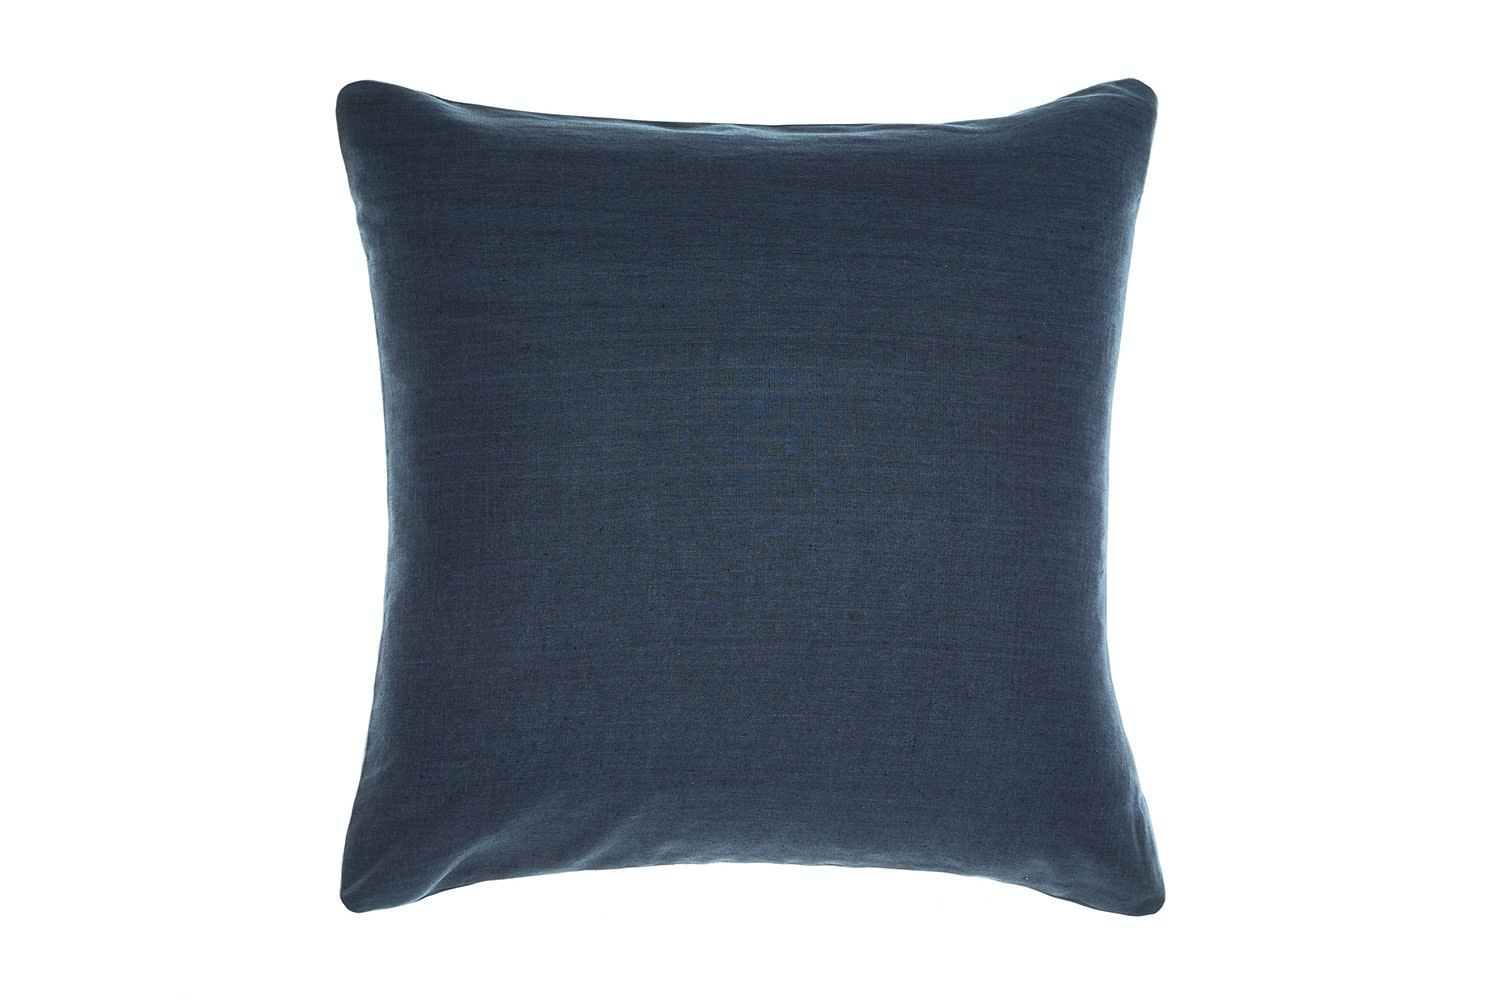 Nimes Indigo Euro Pillowcase by Savona